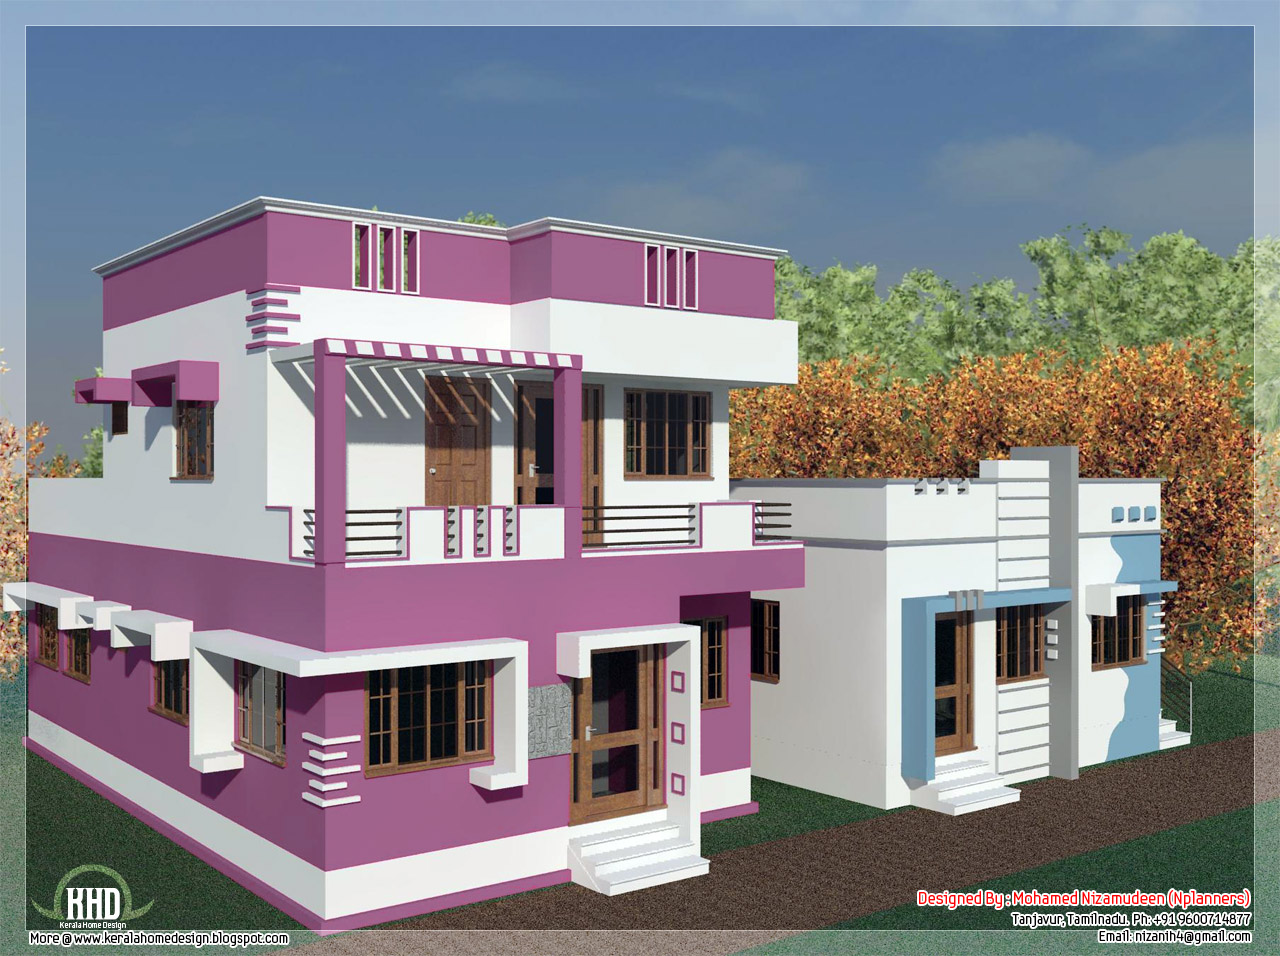 Tamilnadu model home desgin in 3000 home sweet home for Home models in tamilnadu pictures